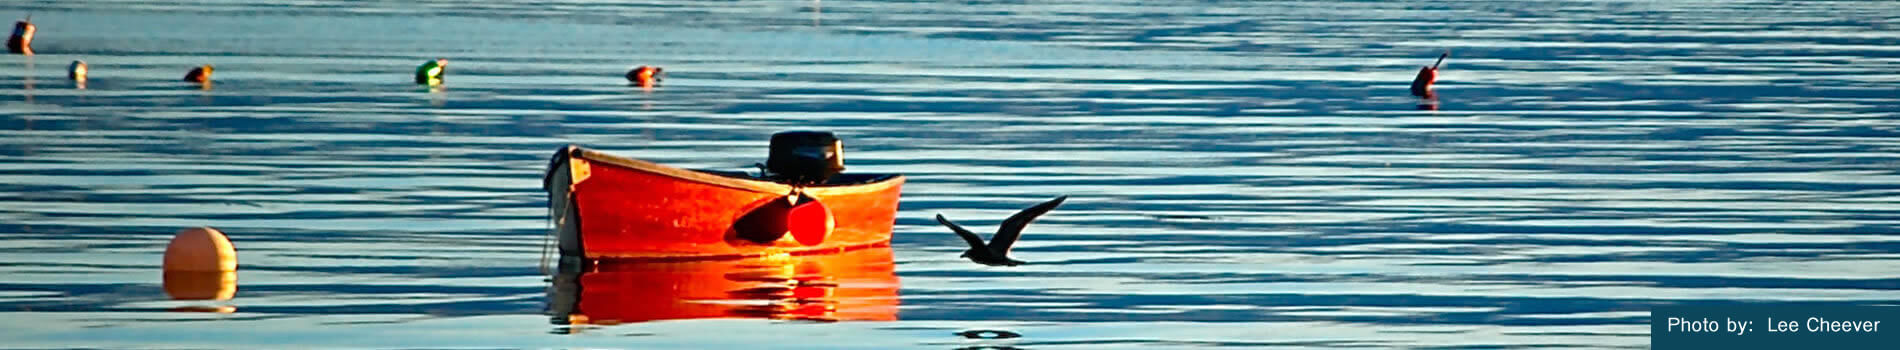 Image is of a red boat on the water.